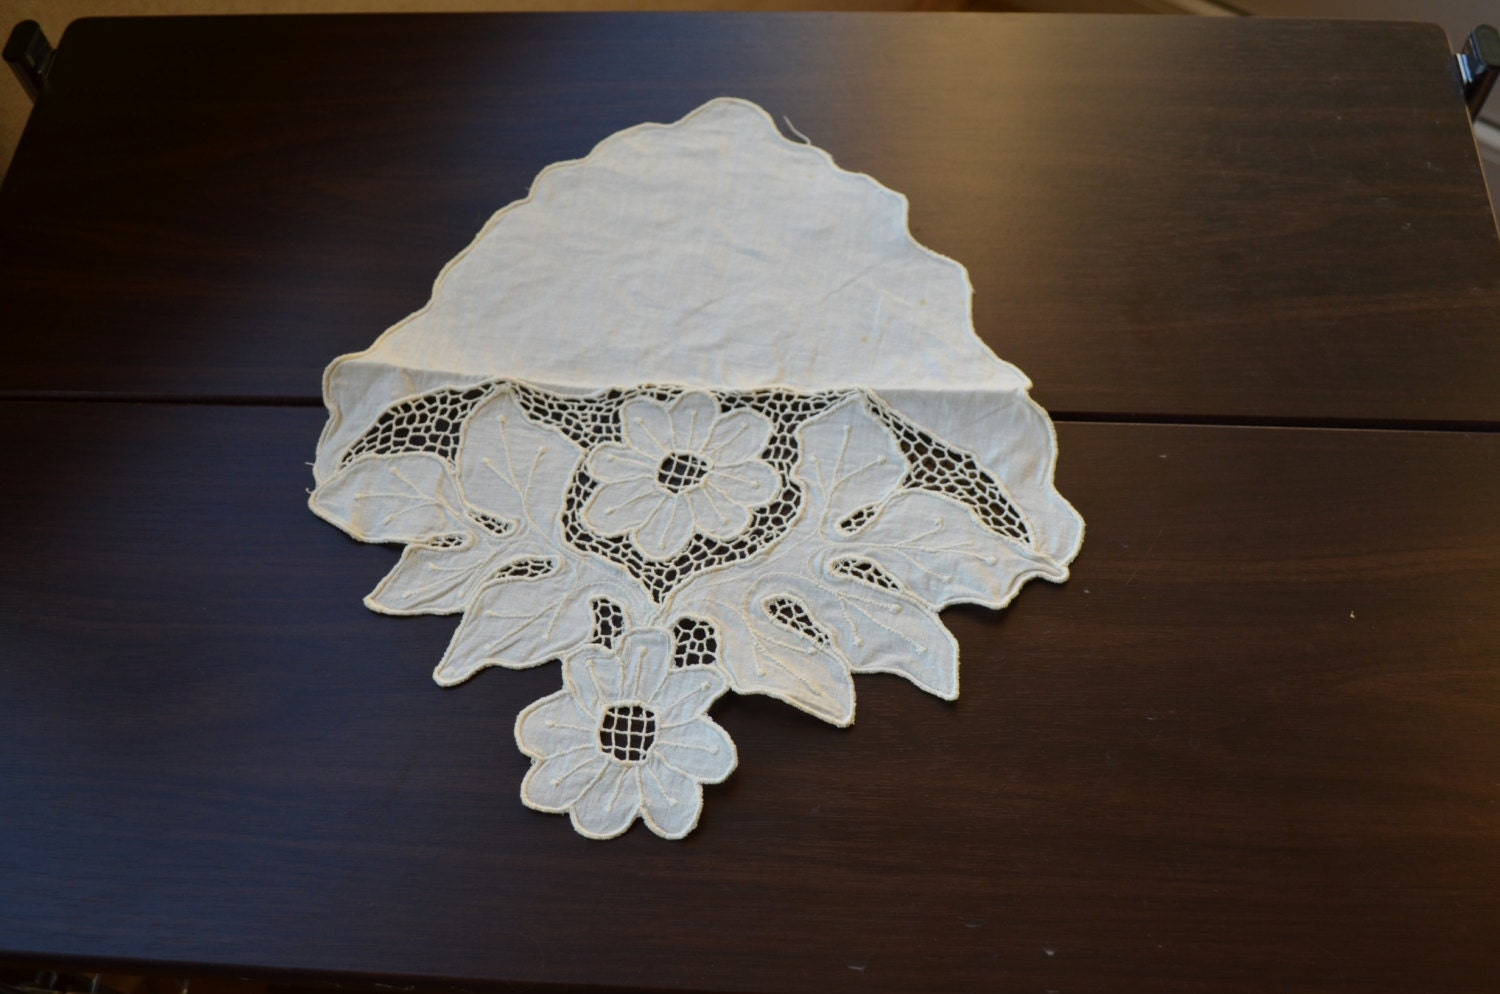 Vintage Decor Napkin for forniture from USSR 50s, Lace decor from USSR, table-na